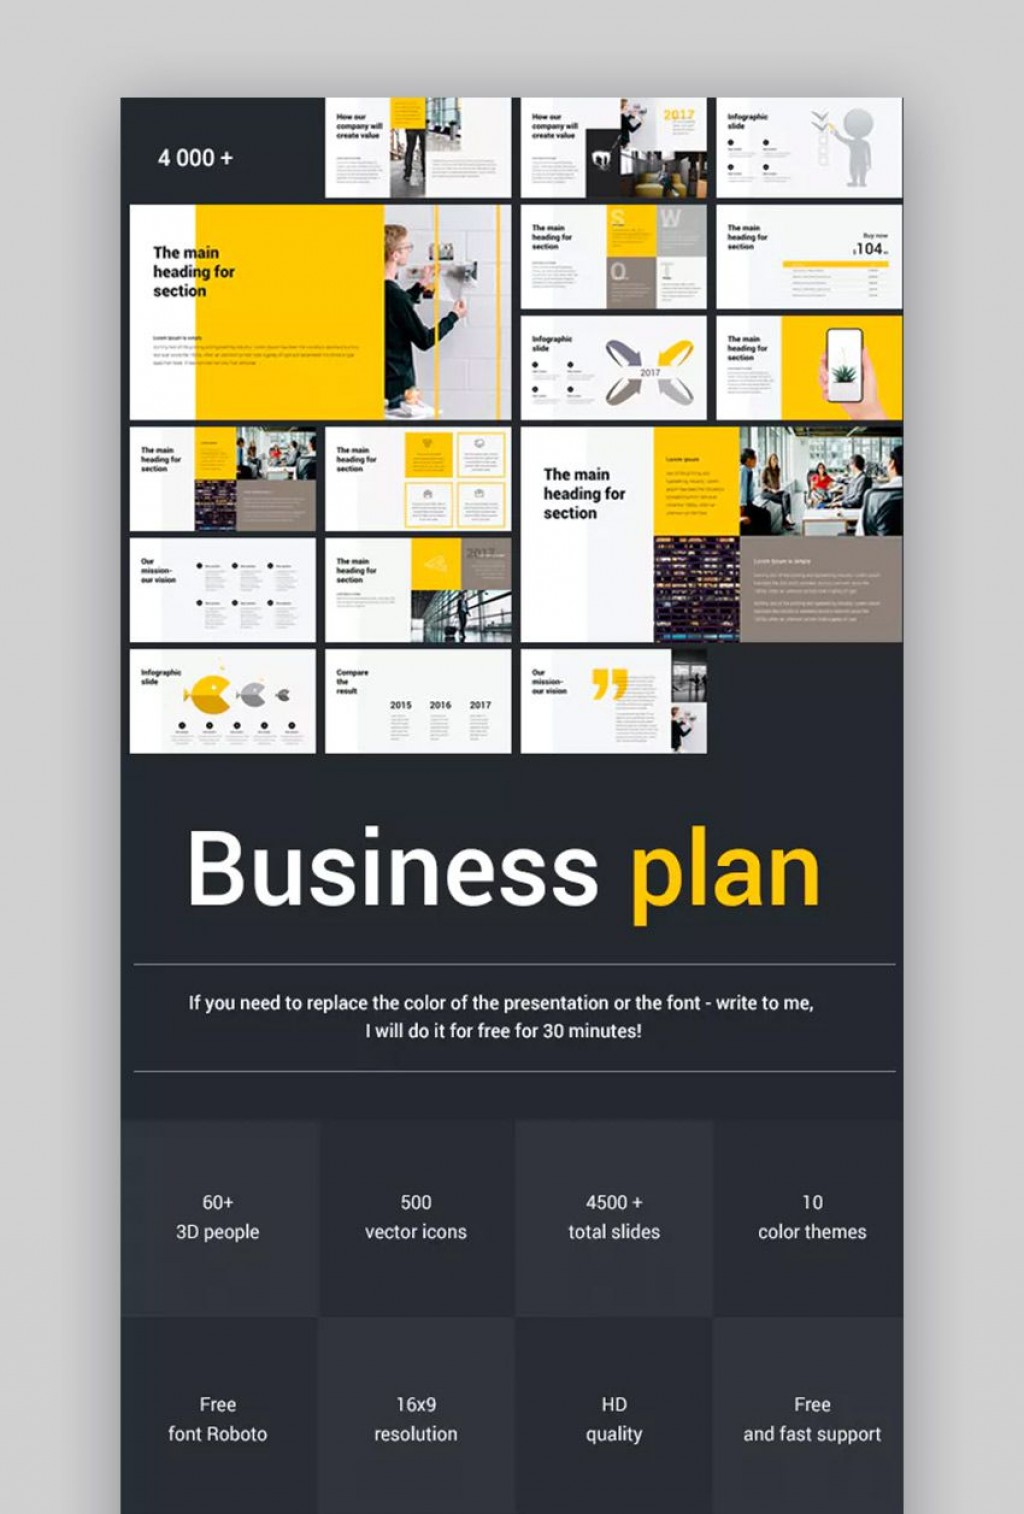 003 Unforgettable Free Busines Plan Powerpoint Template Download Highest Quality  Modern UltimateLarge